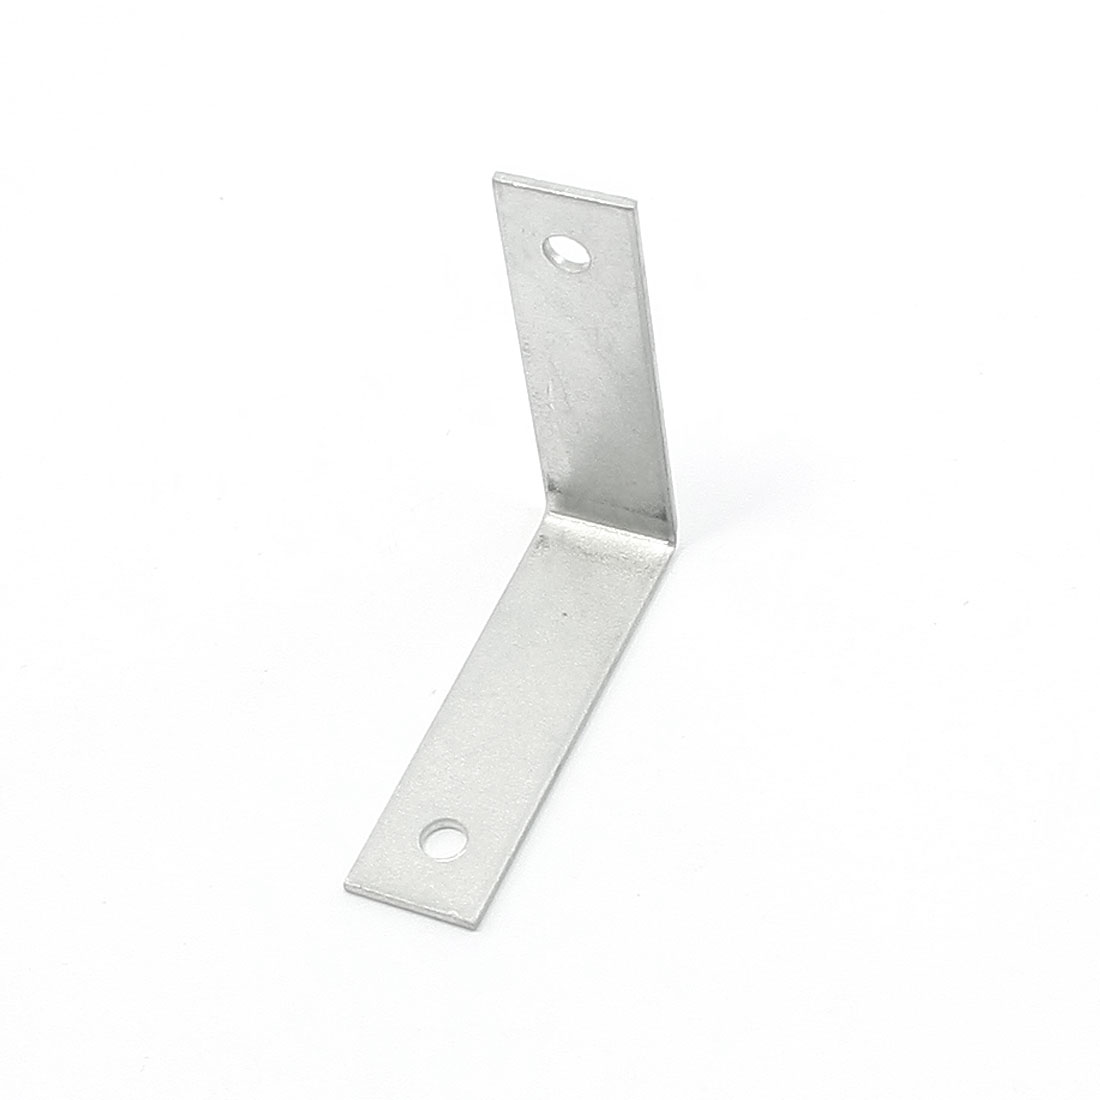 Silver Tone Aluminum Alloy L Shaped Angle Bracket for Tables Models